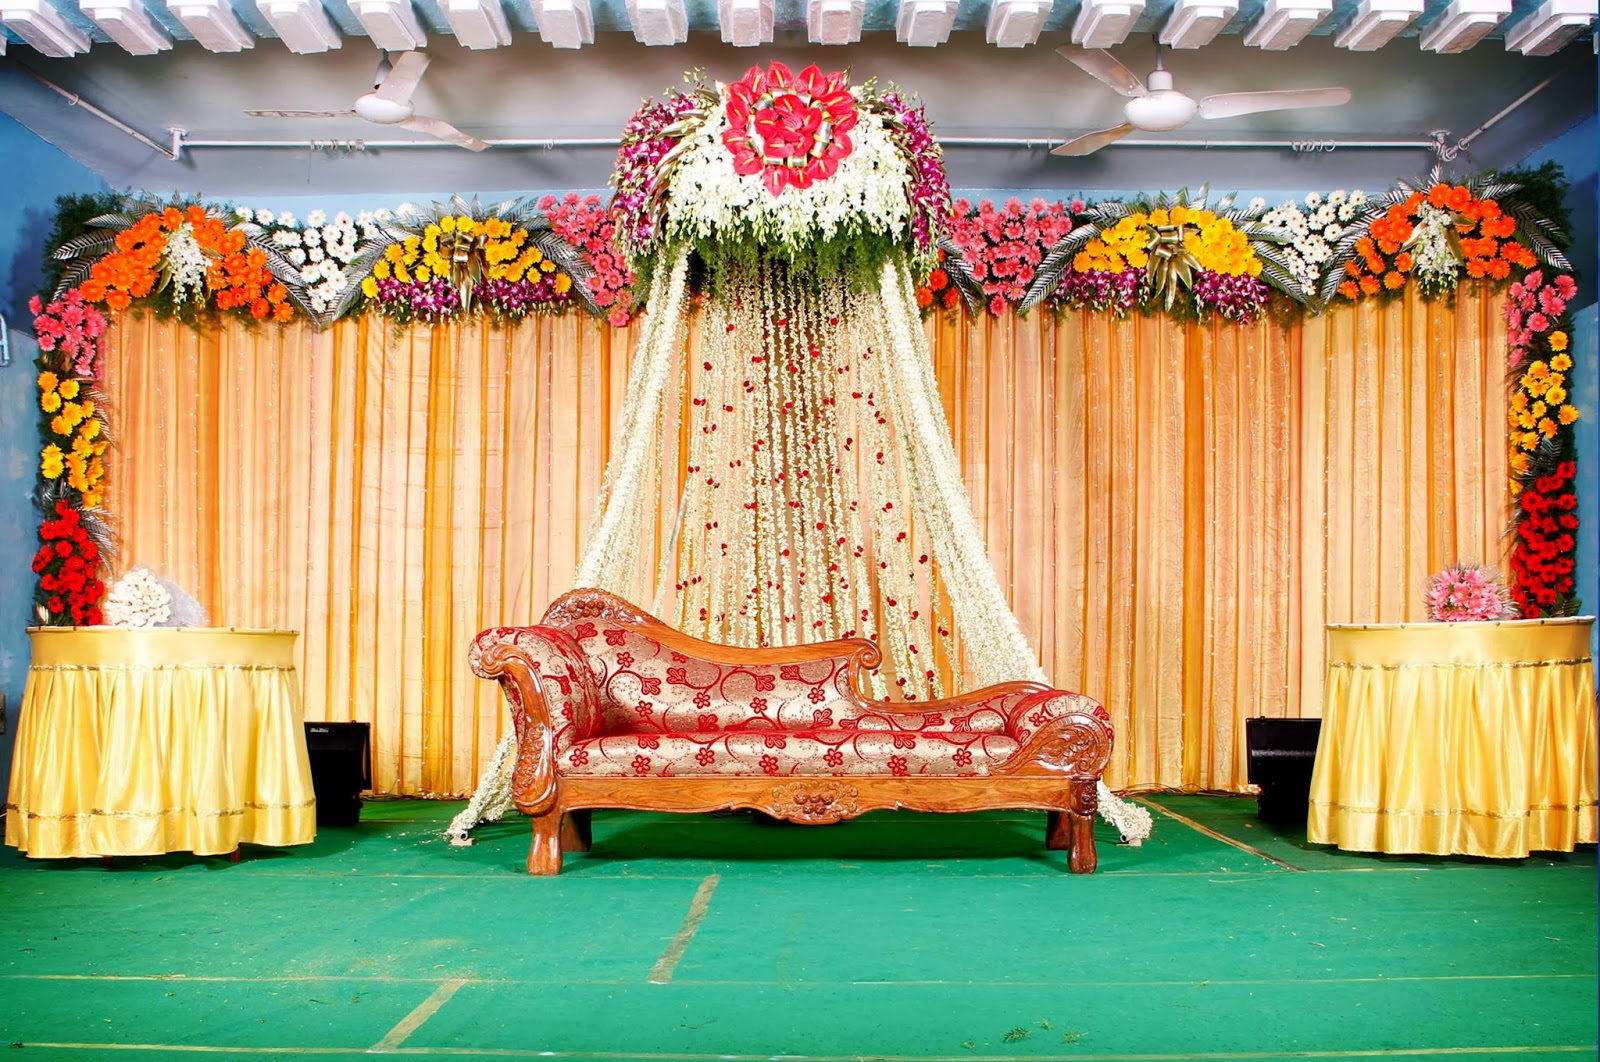 Wedding stage background luckystudio4u for Backdrops for stage decoration